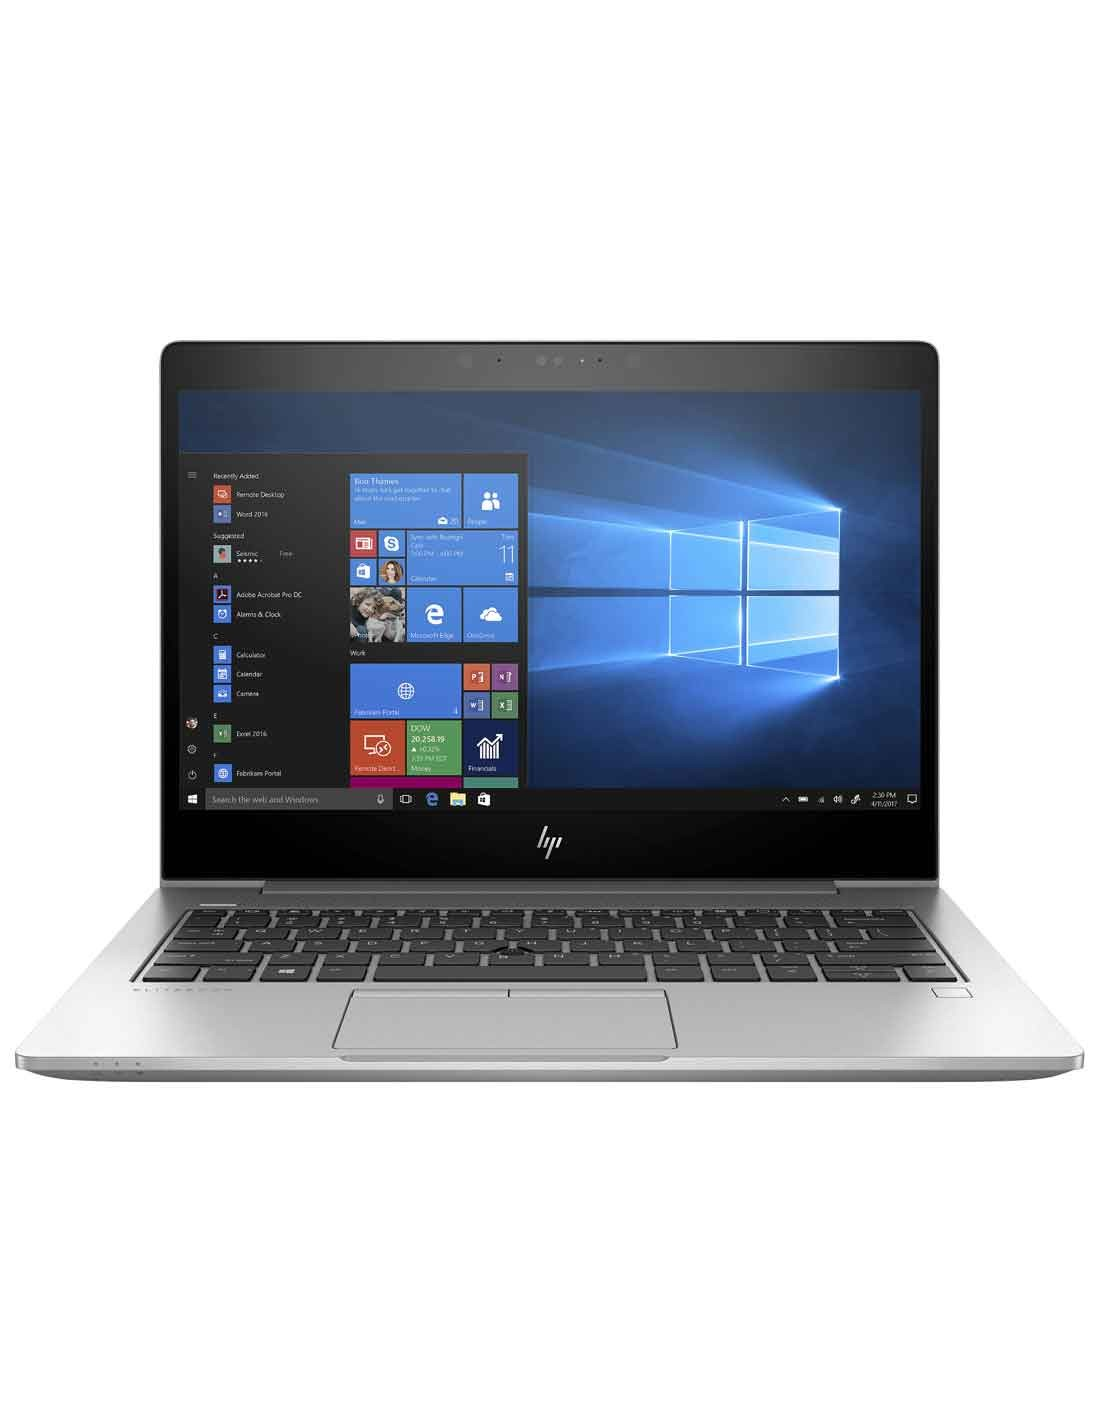 HP EliteBook 830 G5 Notebook 16GB at the cheapest price in Dubai laptop store